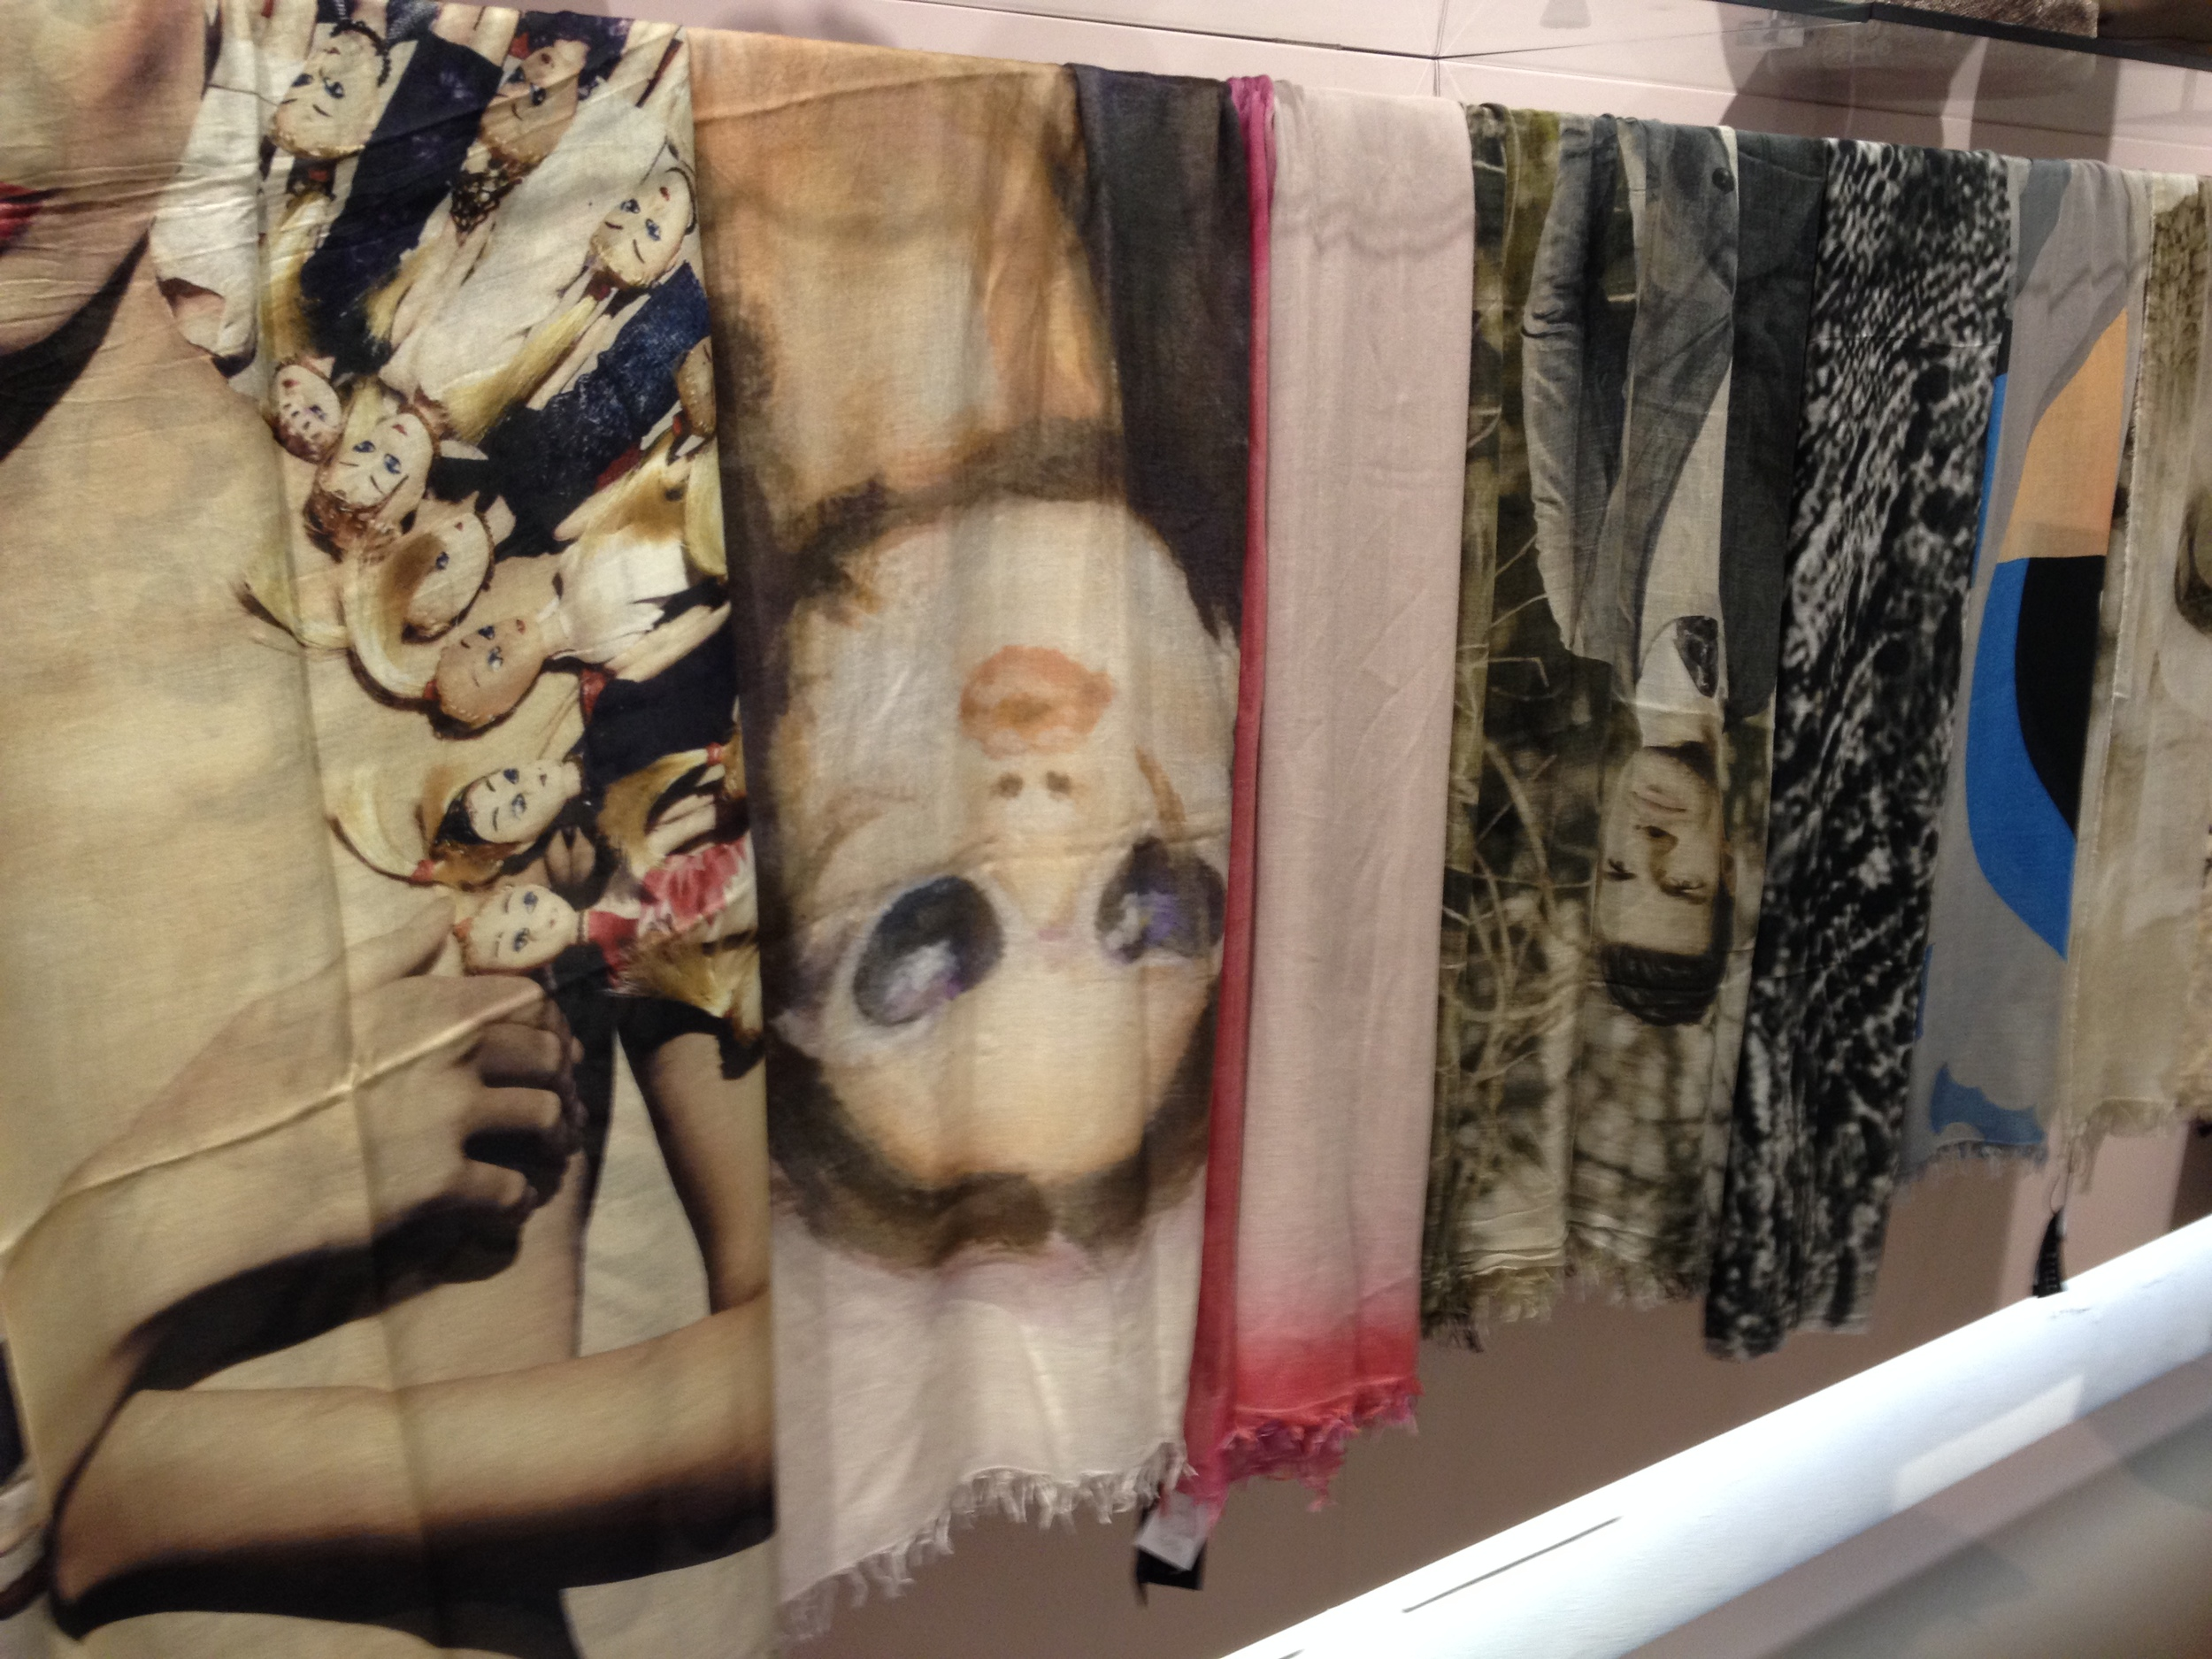 This wall of scarves at FLY had the feel of contemporary art exhibition.